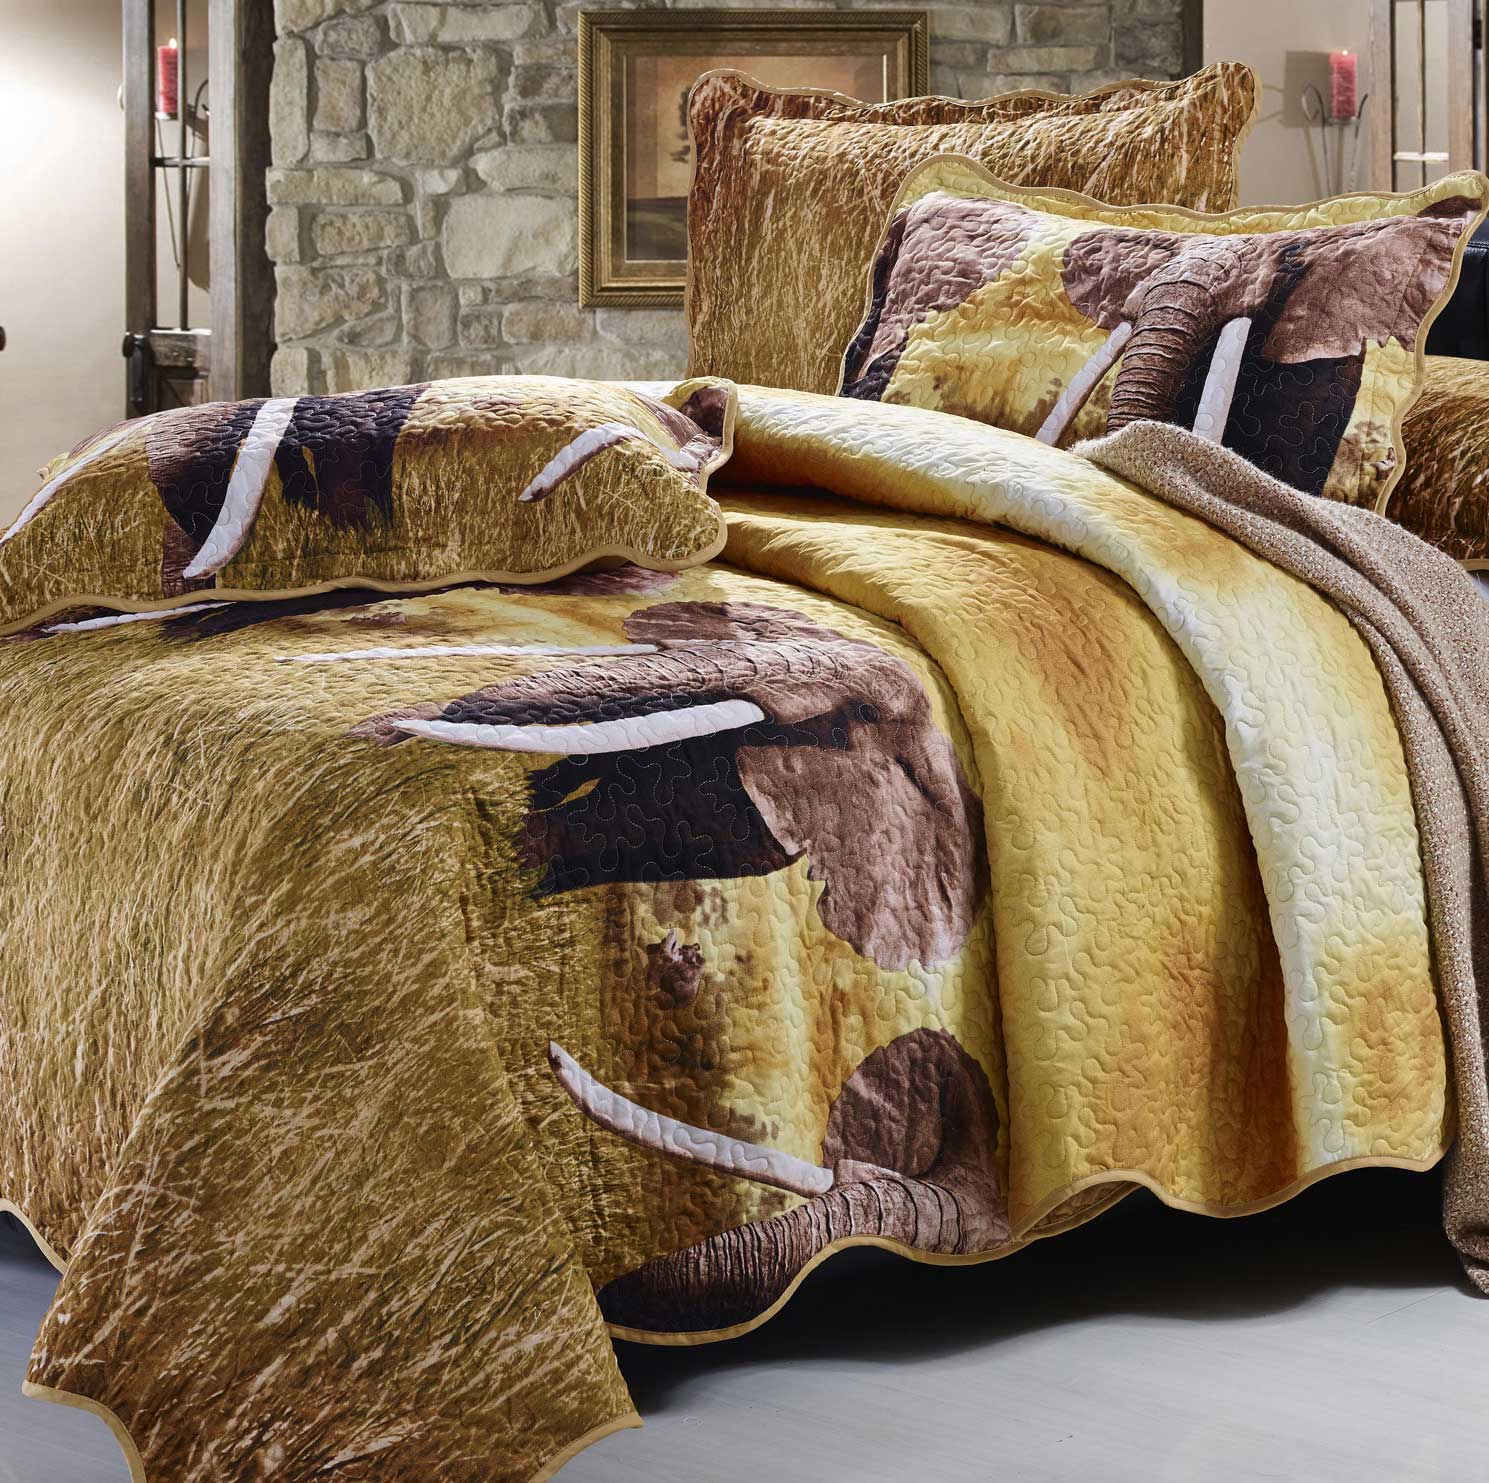 Safari Elephants in High-Definition on your Bed. Complete Bedding Set!